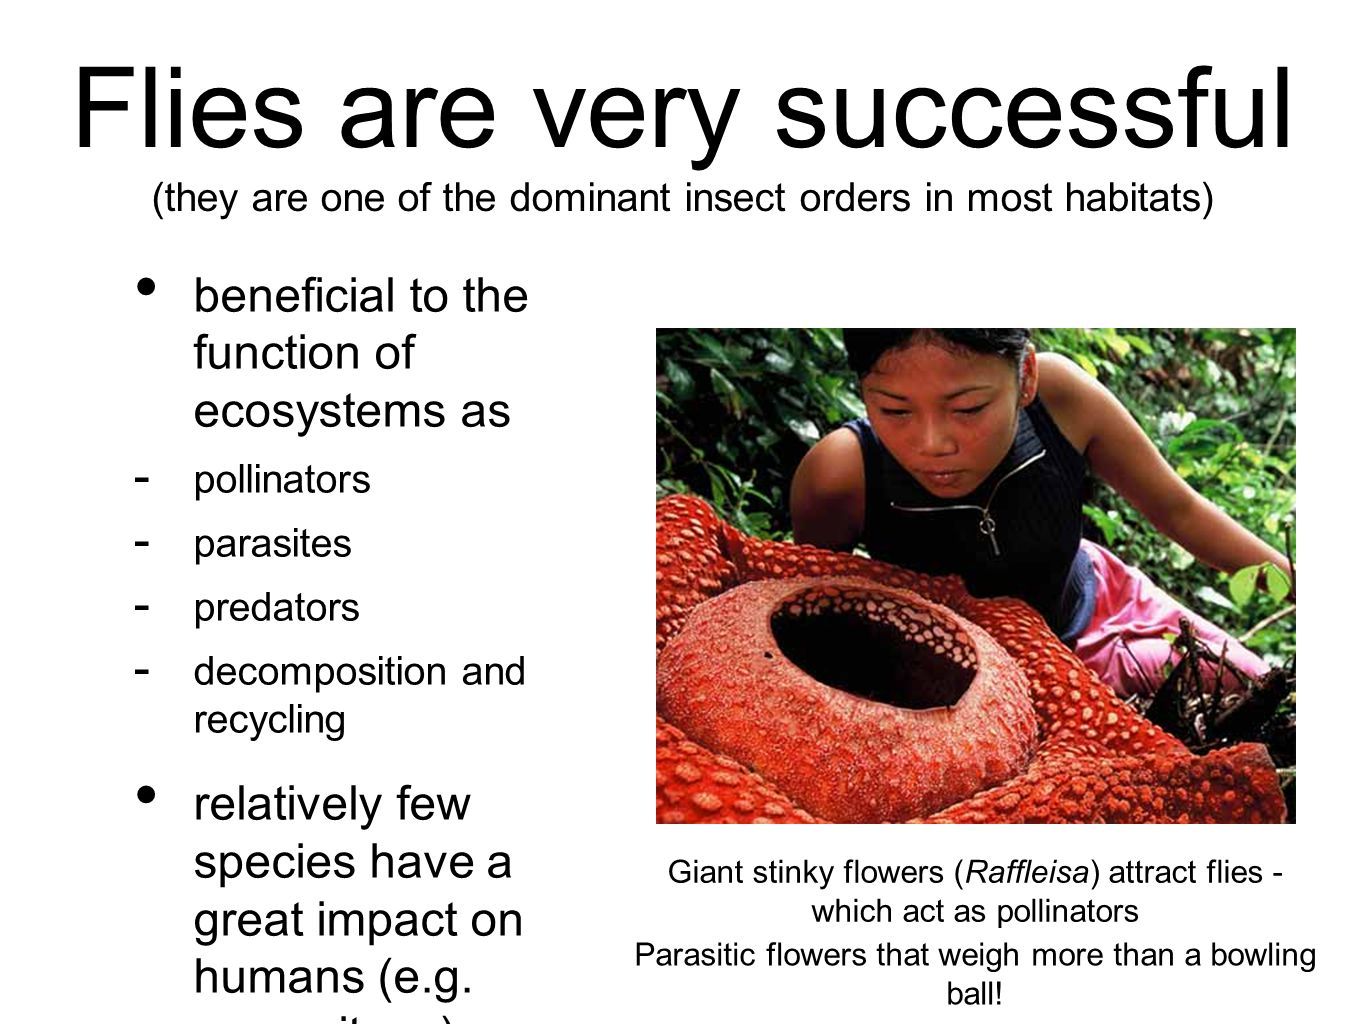 beneficial to the function of ecosystems as  pollinators  parasites  predators  decomposition and recycling relatively few species have a great impact on humans (e.g.